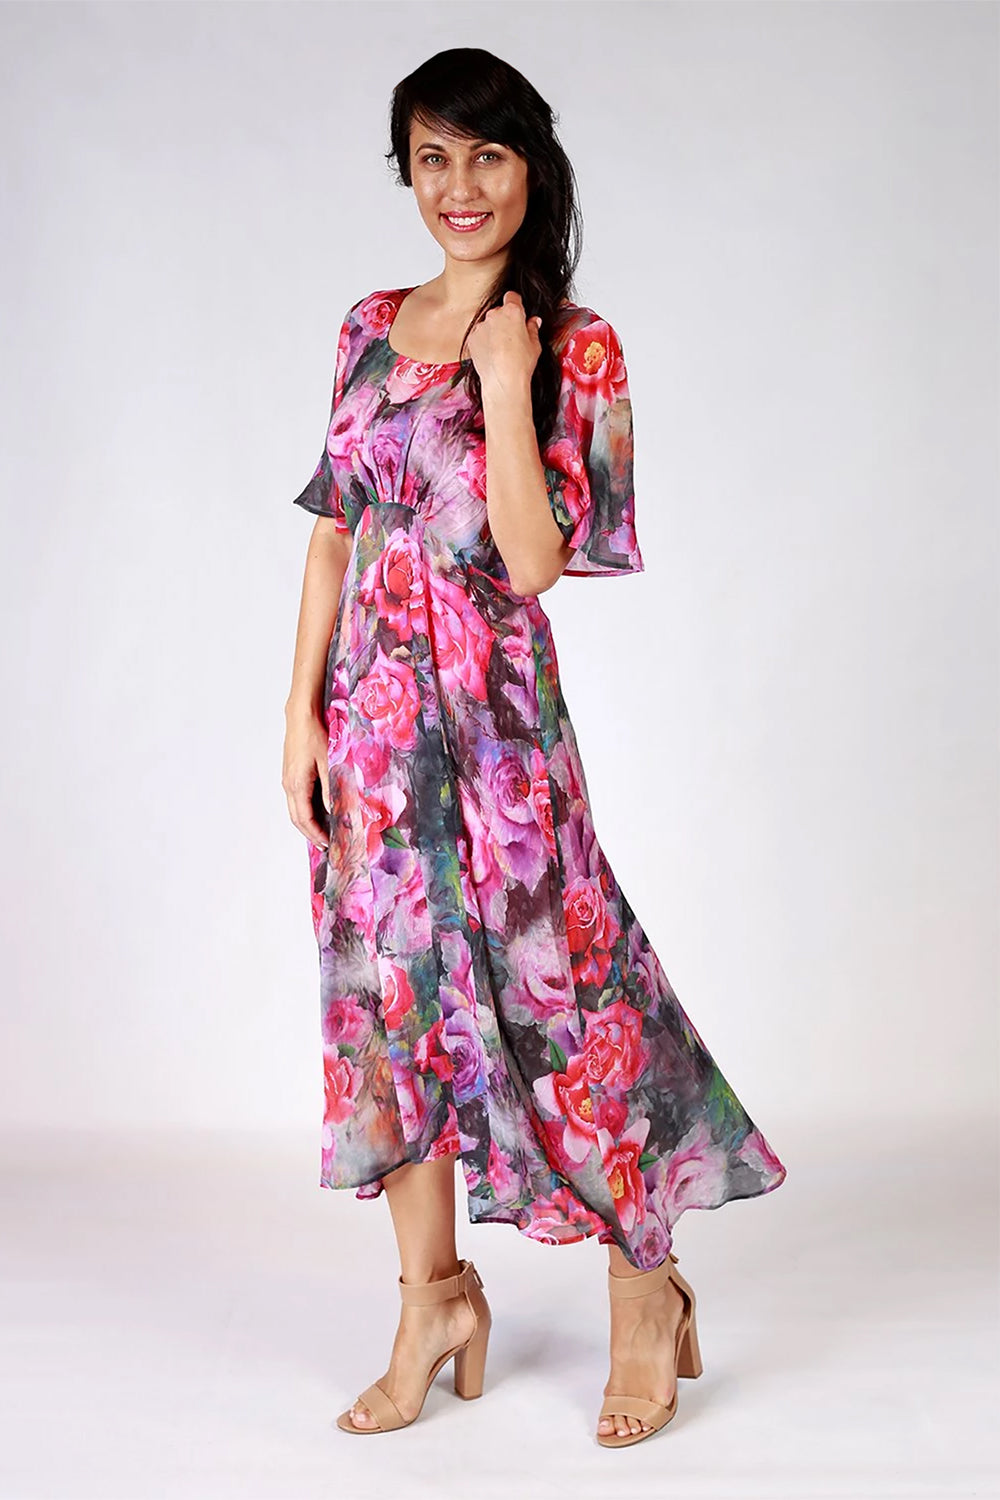 Designer Fashion NZ / Evening Dresses NZ / Evening Wear NZ /  Floral Dresses NZ /